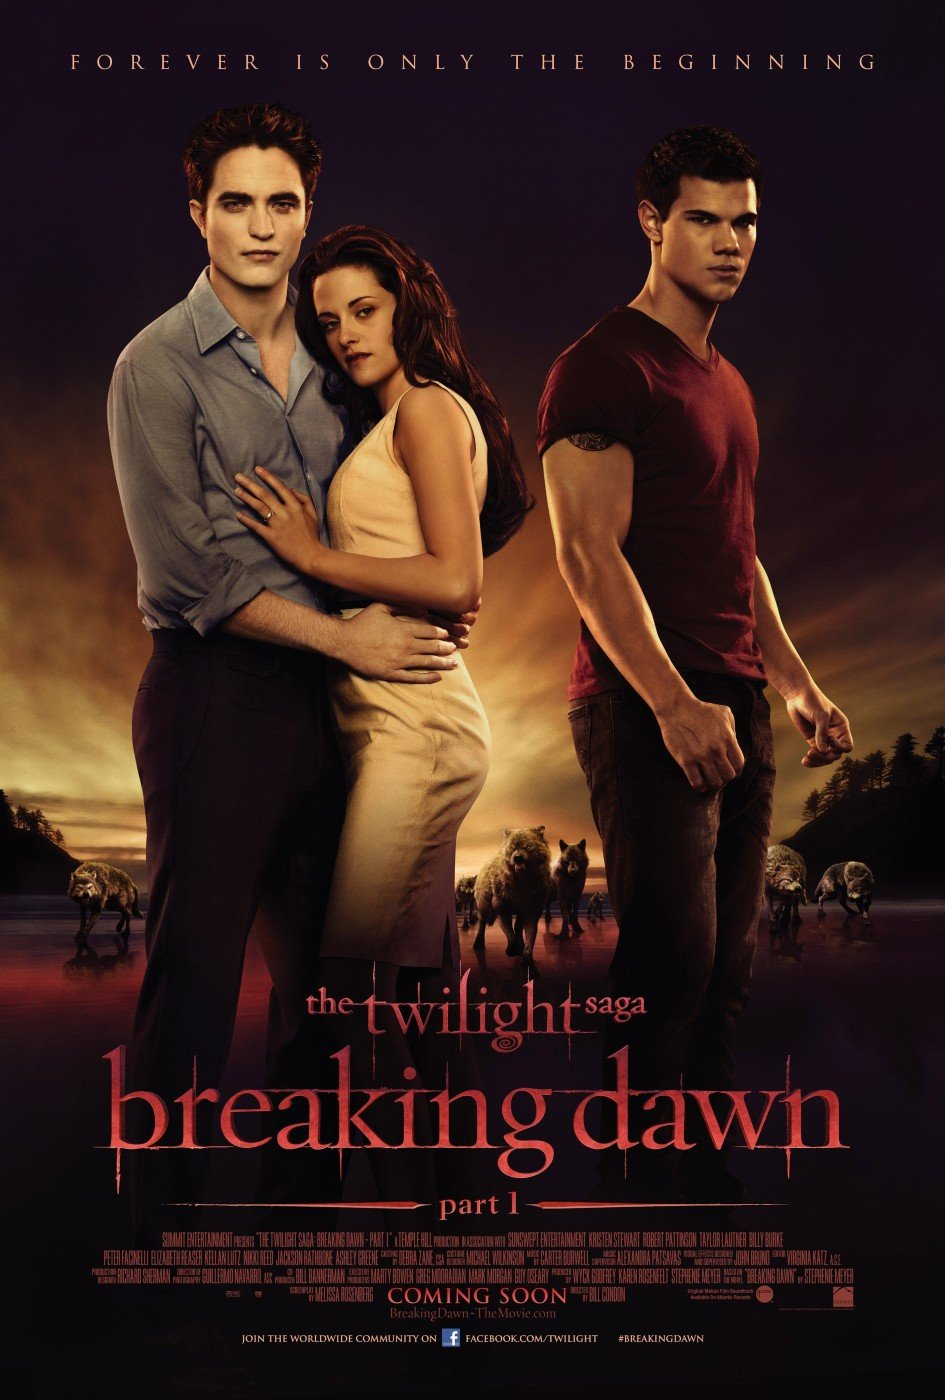 InDepth InterView: Paul Becker Talks TWILIGHT: BREAKING DAWN, Ben Vereen Documentary, Upcoming Films & More